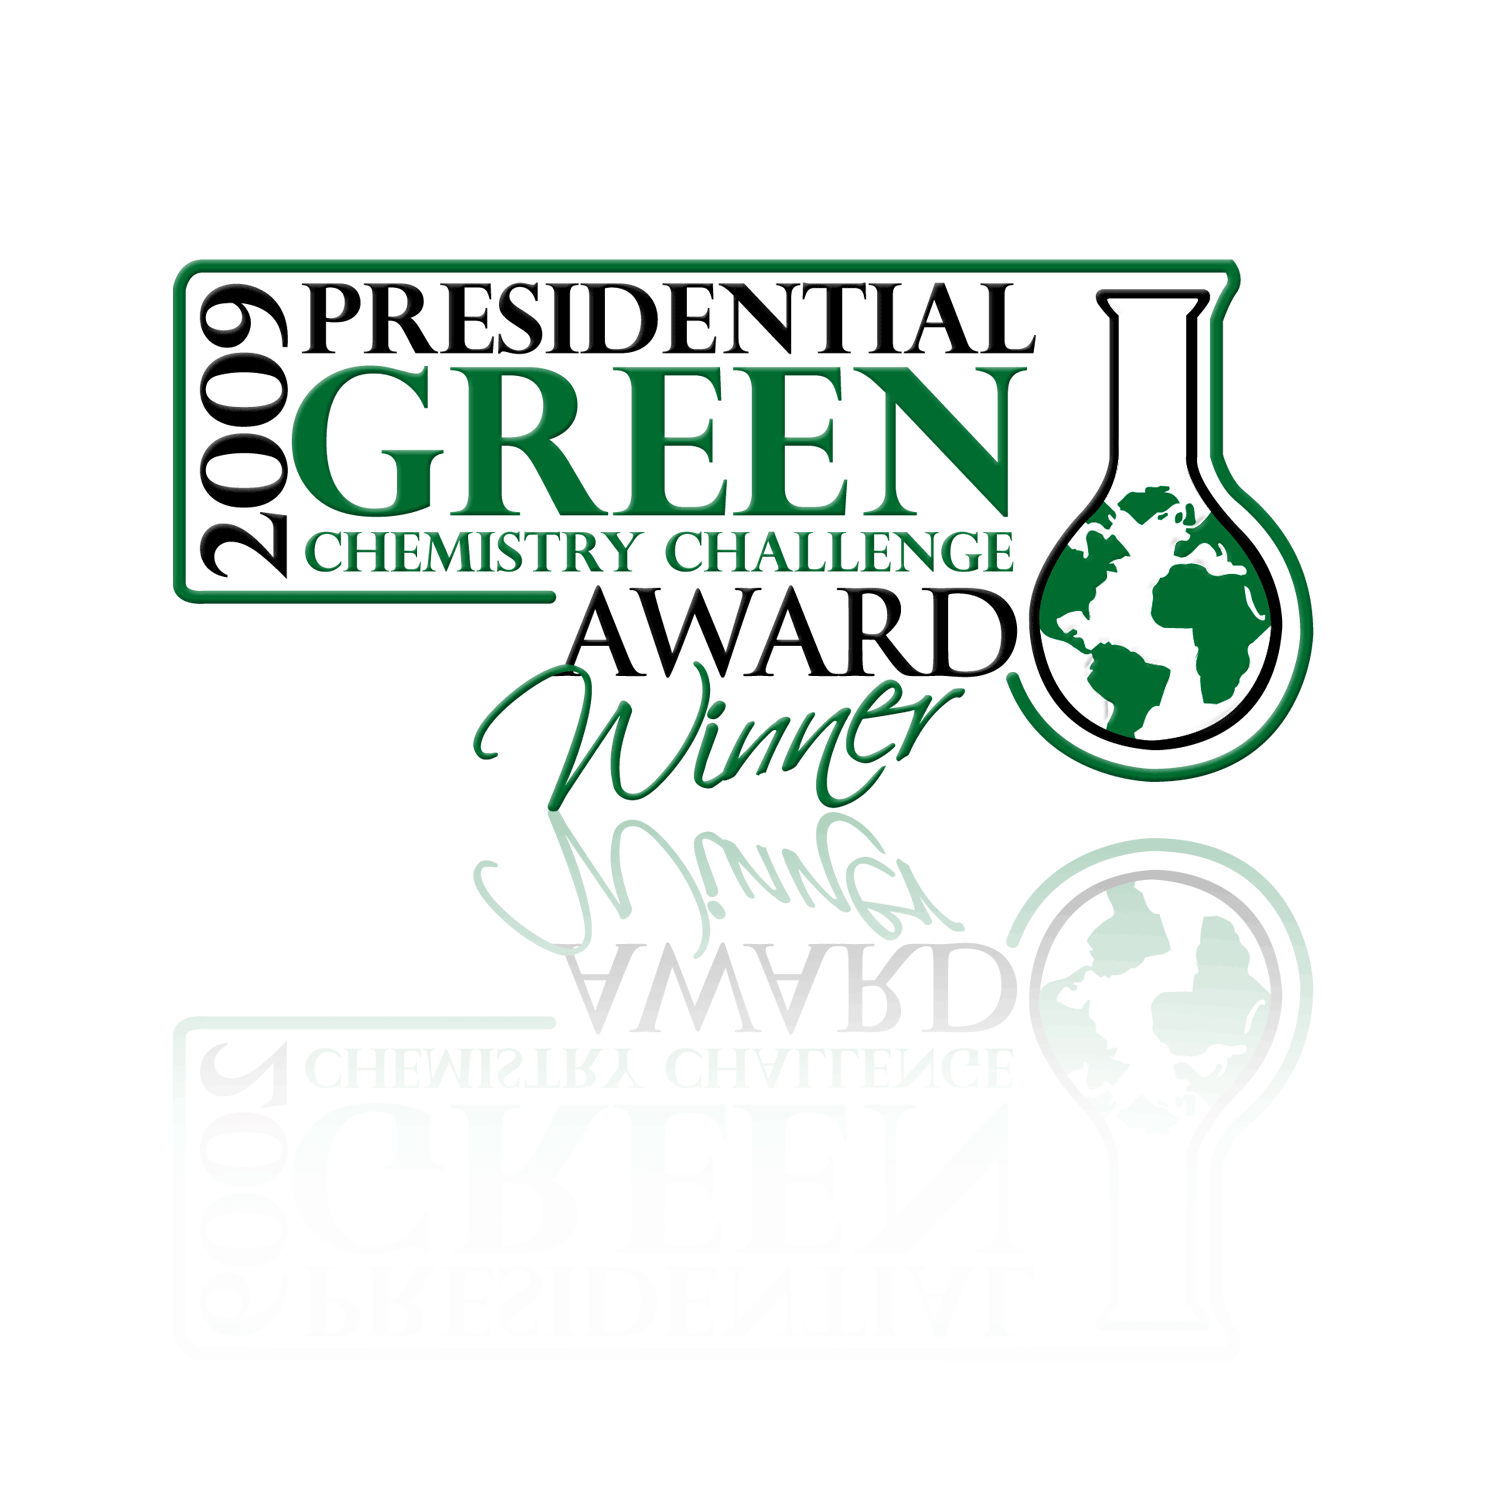 usepa_awrd_logo-w-reflection.png